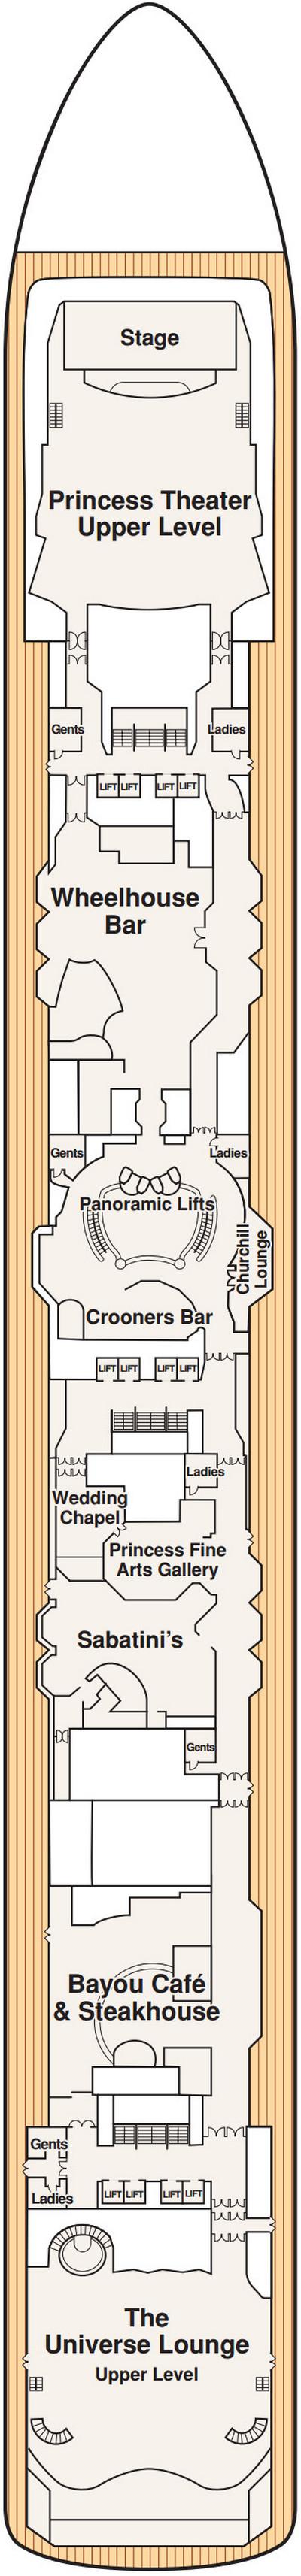 Coral Princess Promenade Deck 7 layout